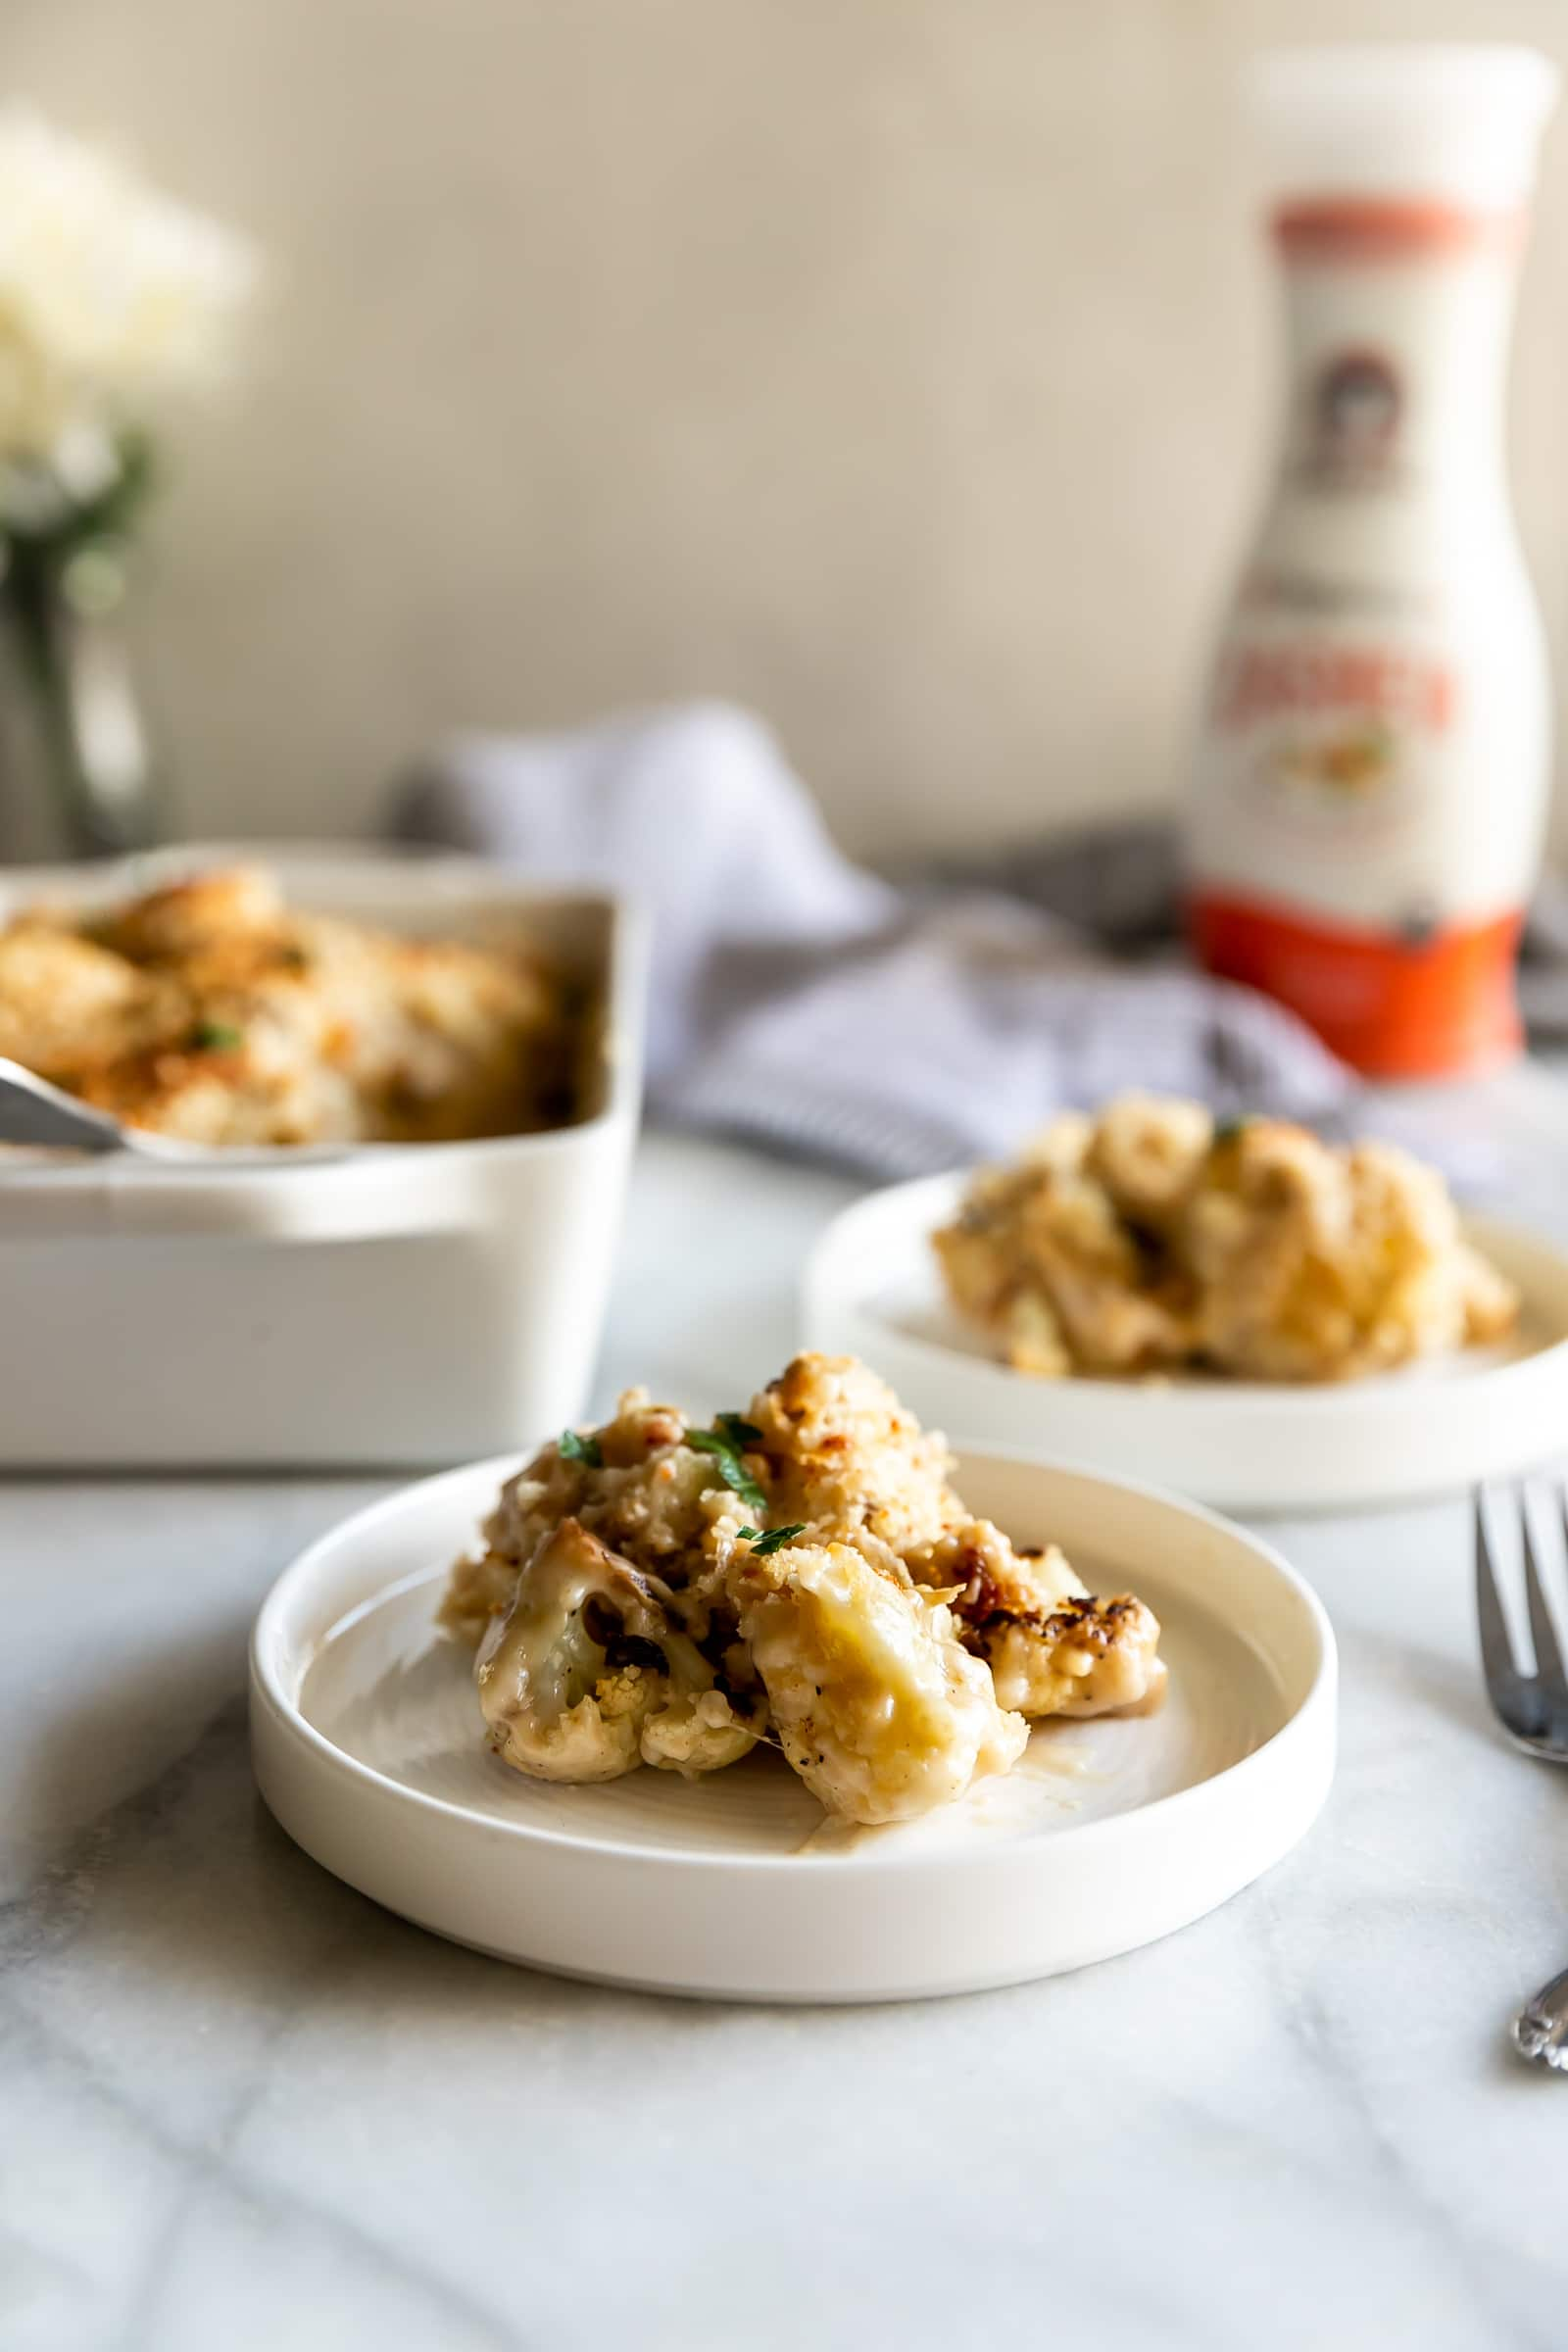 A deliciously creamy roasted cauliflower gratin made with a simple cashew cheese sauce then topped with a cheesy bread crumb topping.